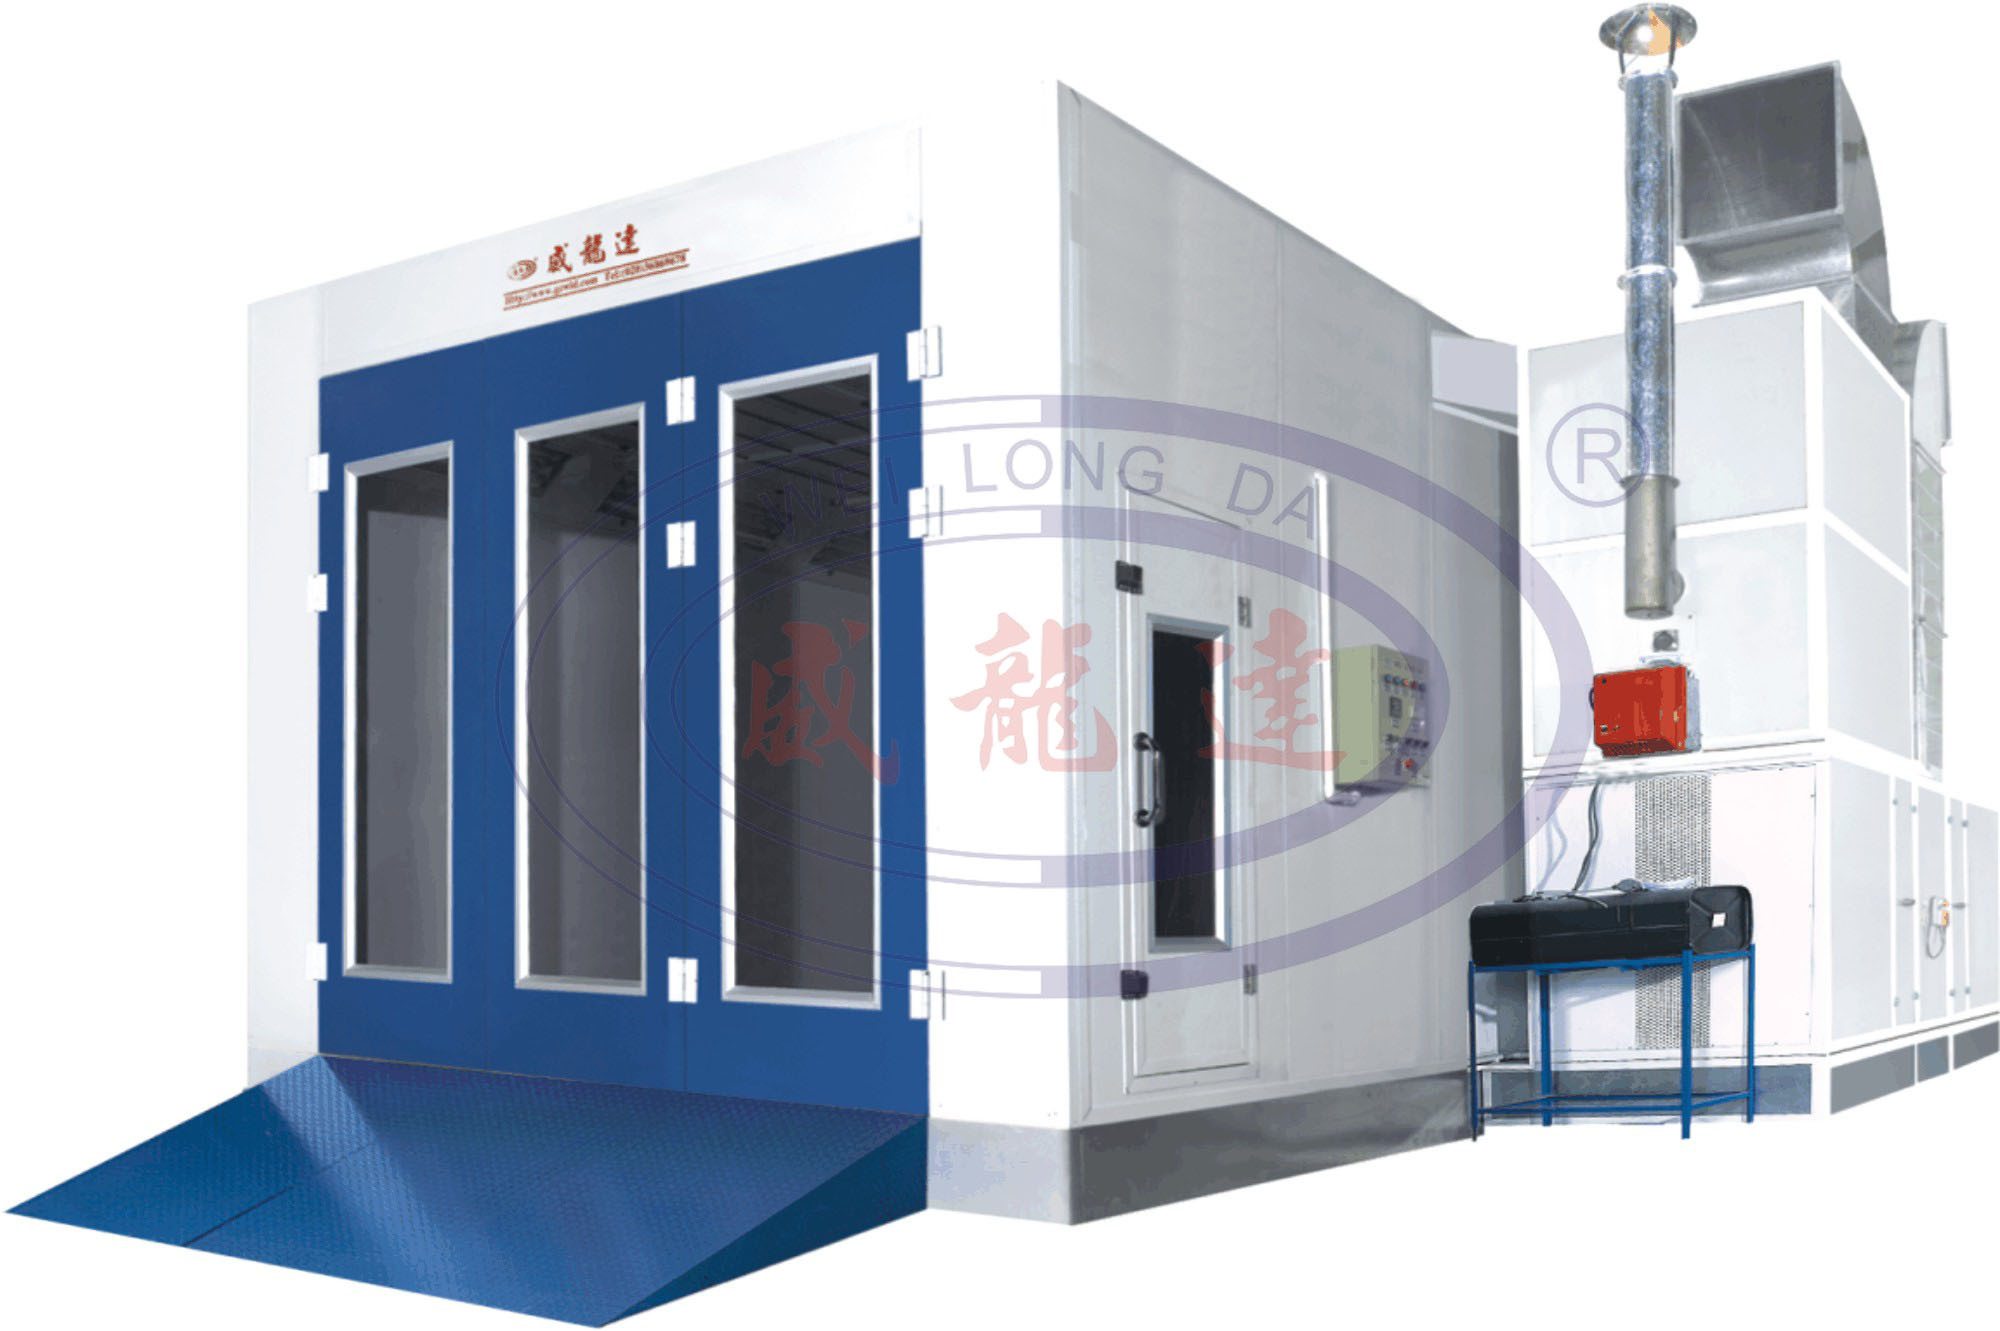 Wld9000 Best Quality Paint Booth Car Spray Booth Painting Wld9000 Best Quality